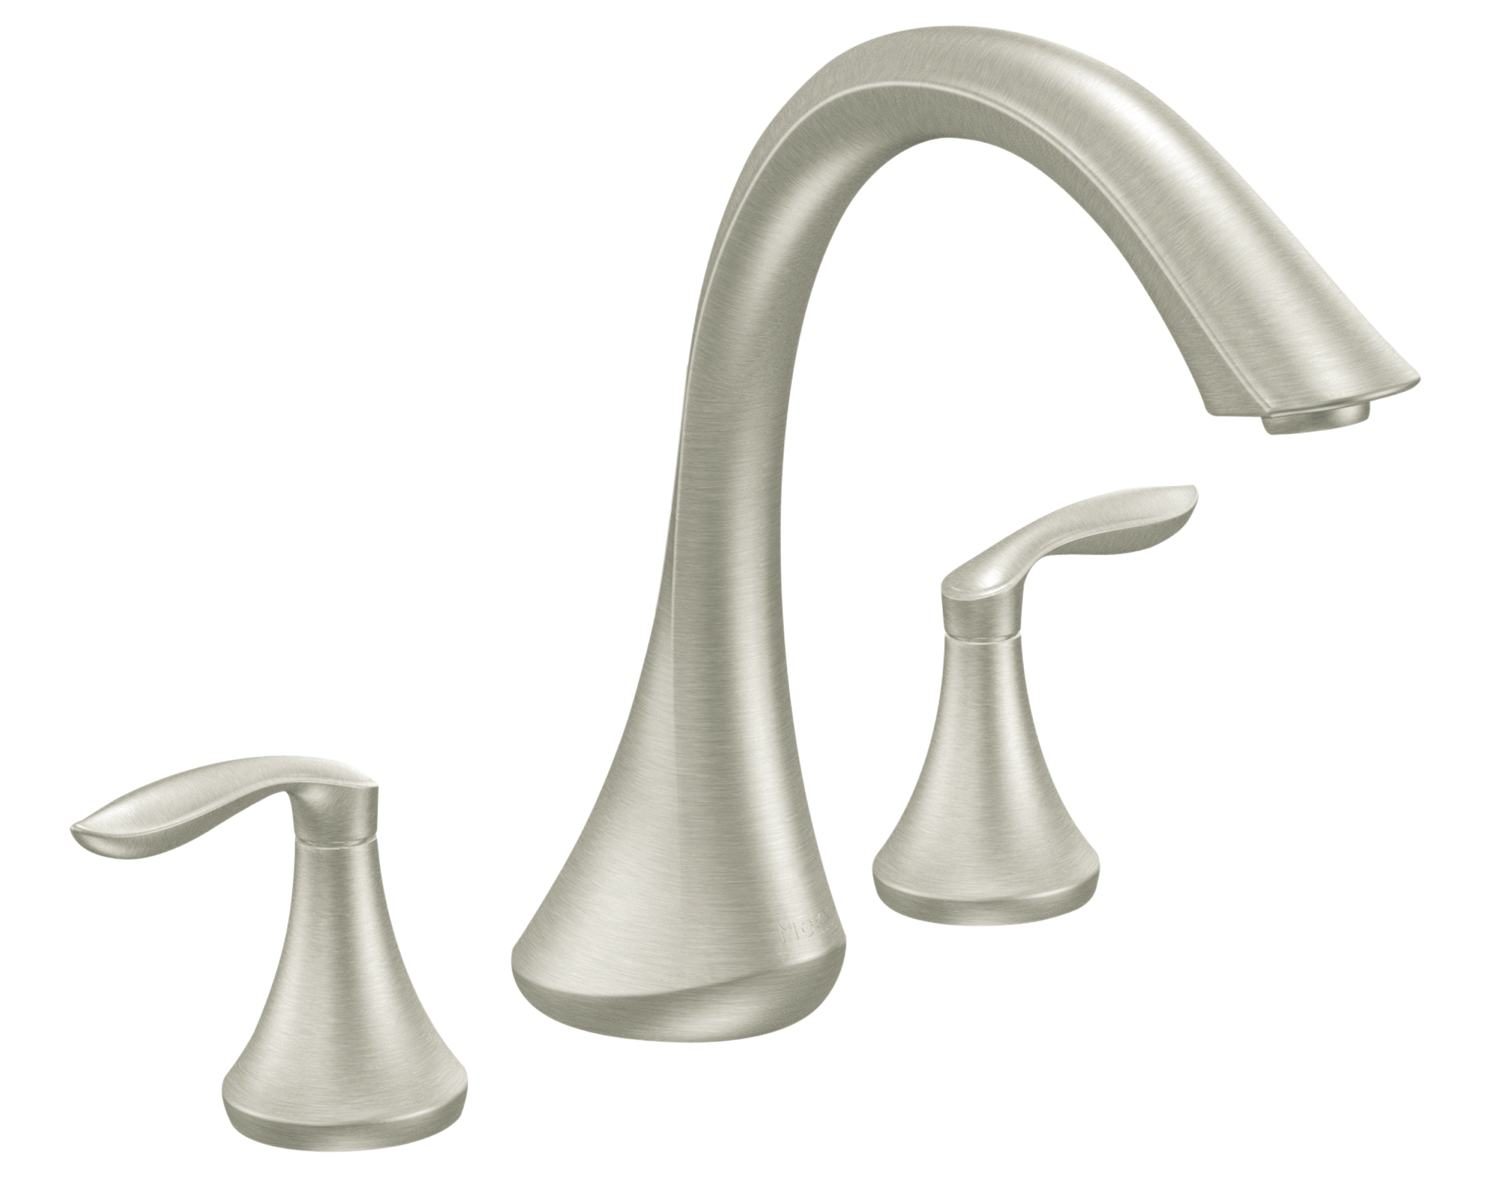 Eva Roman nickel. Moen Eva Two Handle High Arc Roman Tub Faucet without Valve